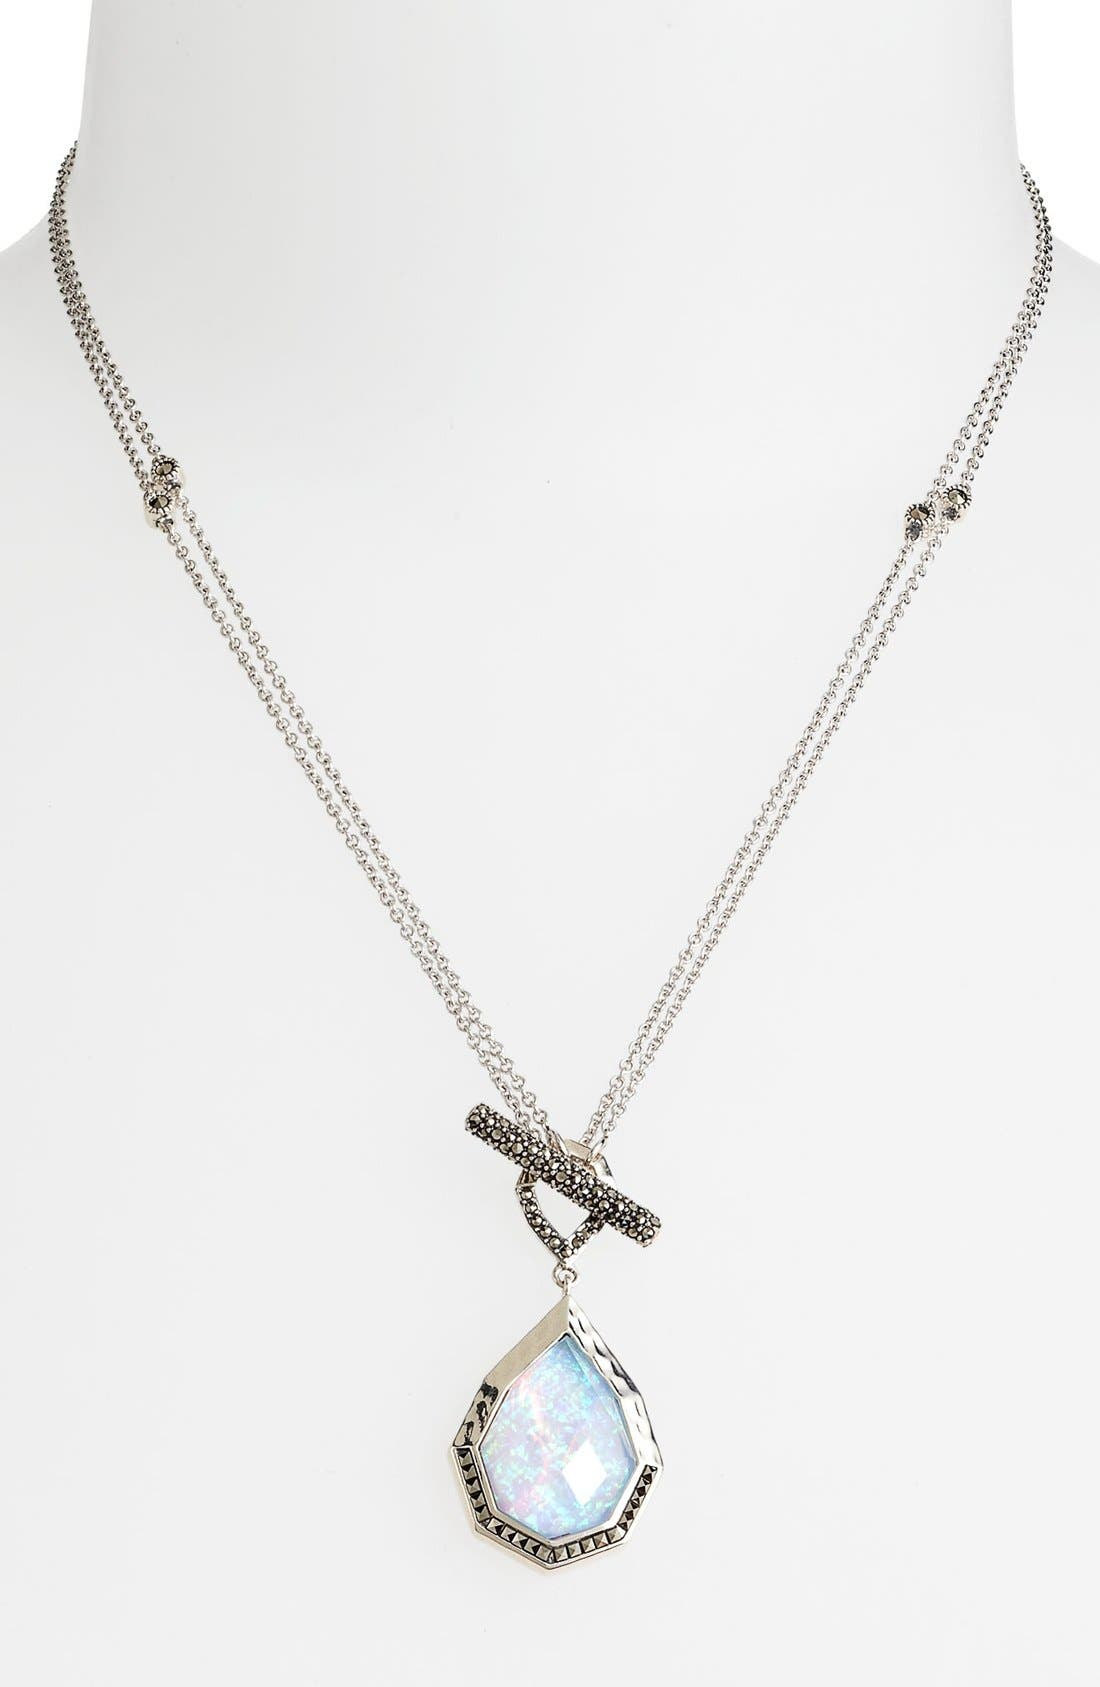 Alternate Image 1 Selected - Judith Jack Convertible Pendant Necklace